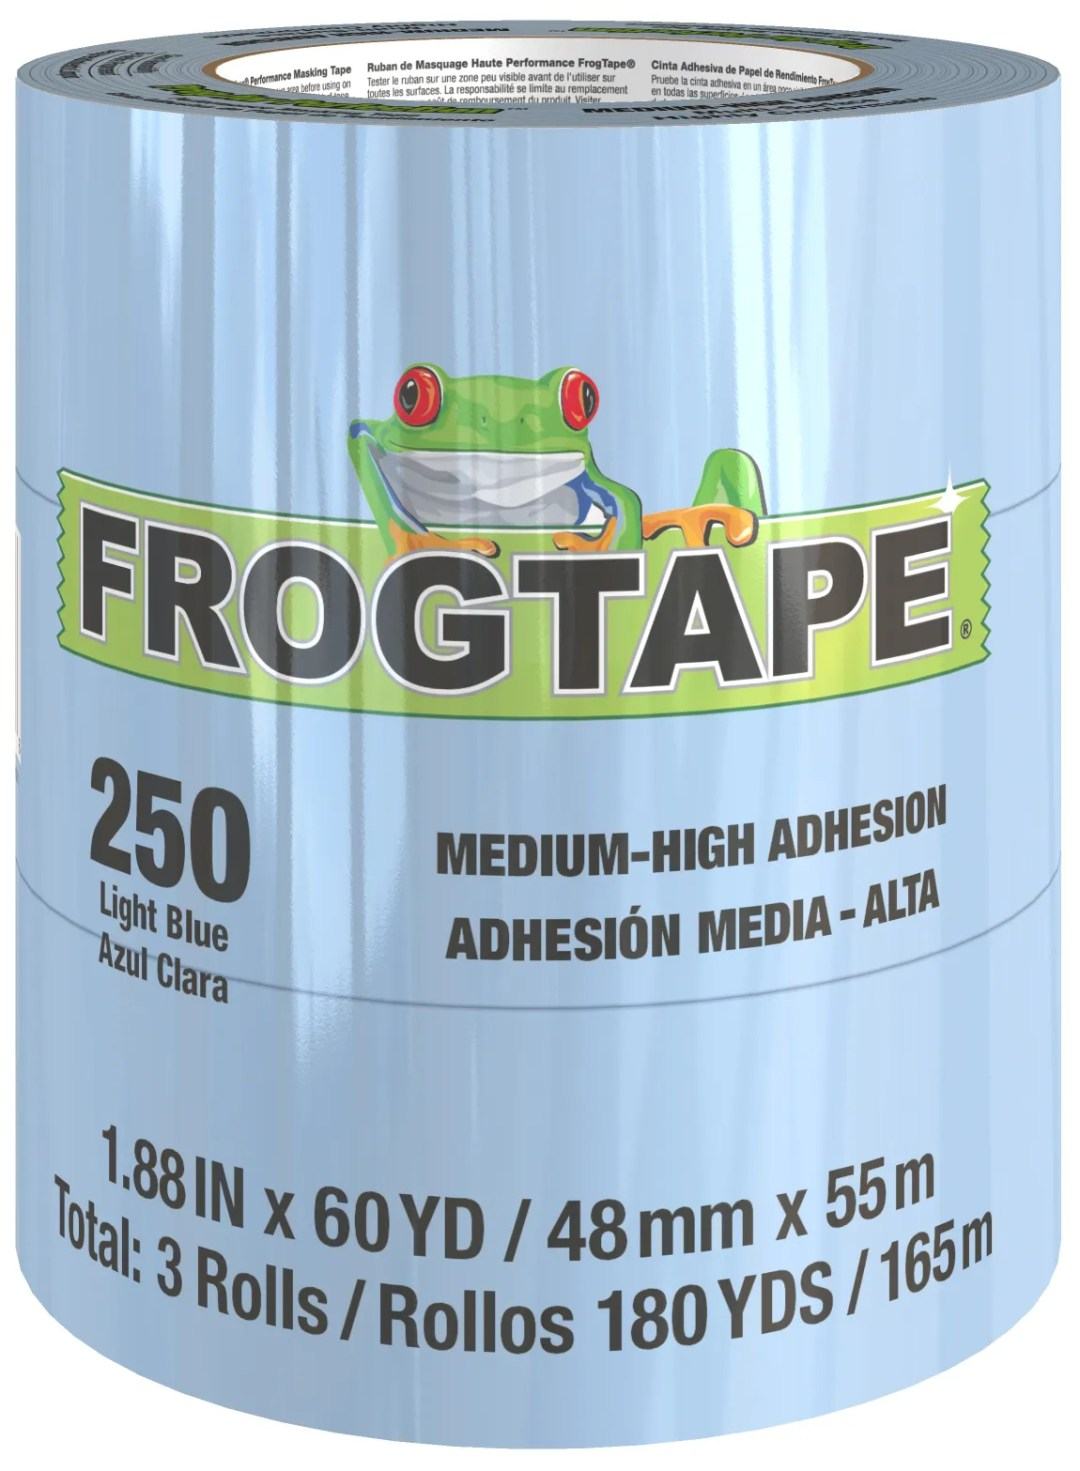 FrogTape® 250 Light Blue Masking Tape Product Image